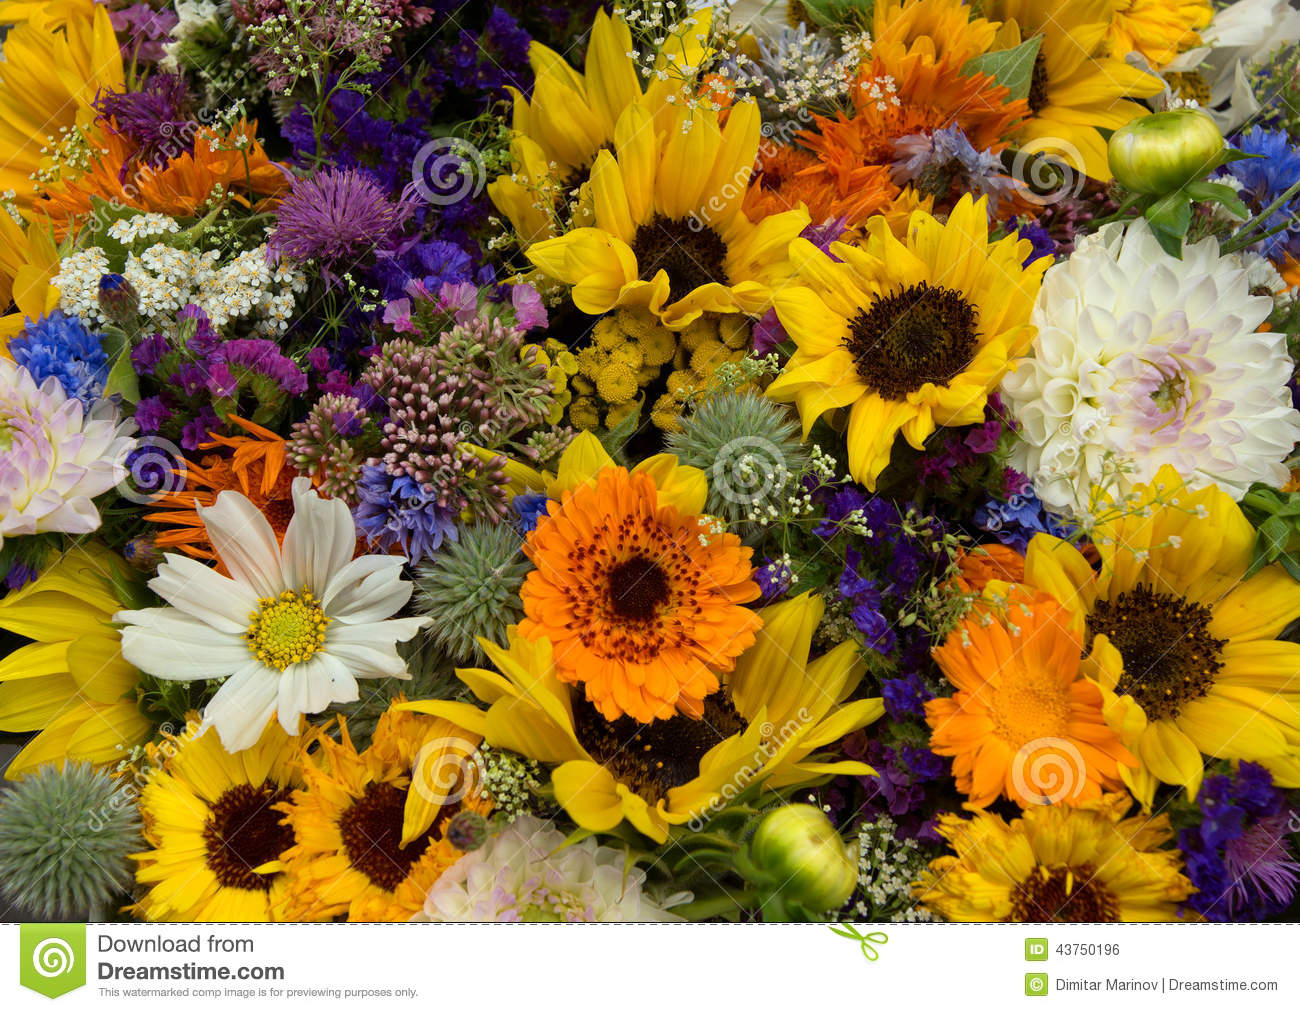 Flowers stock photo image of plant group yellow flower 43750196 download flowers stock photo image of plant group yellow flower 43750196 mightylinksfo